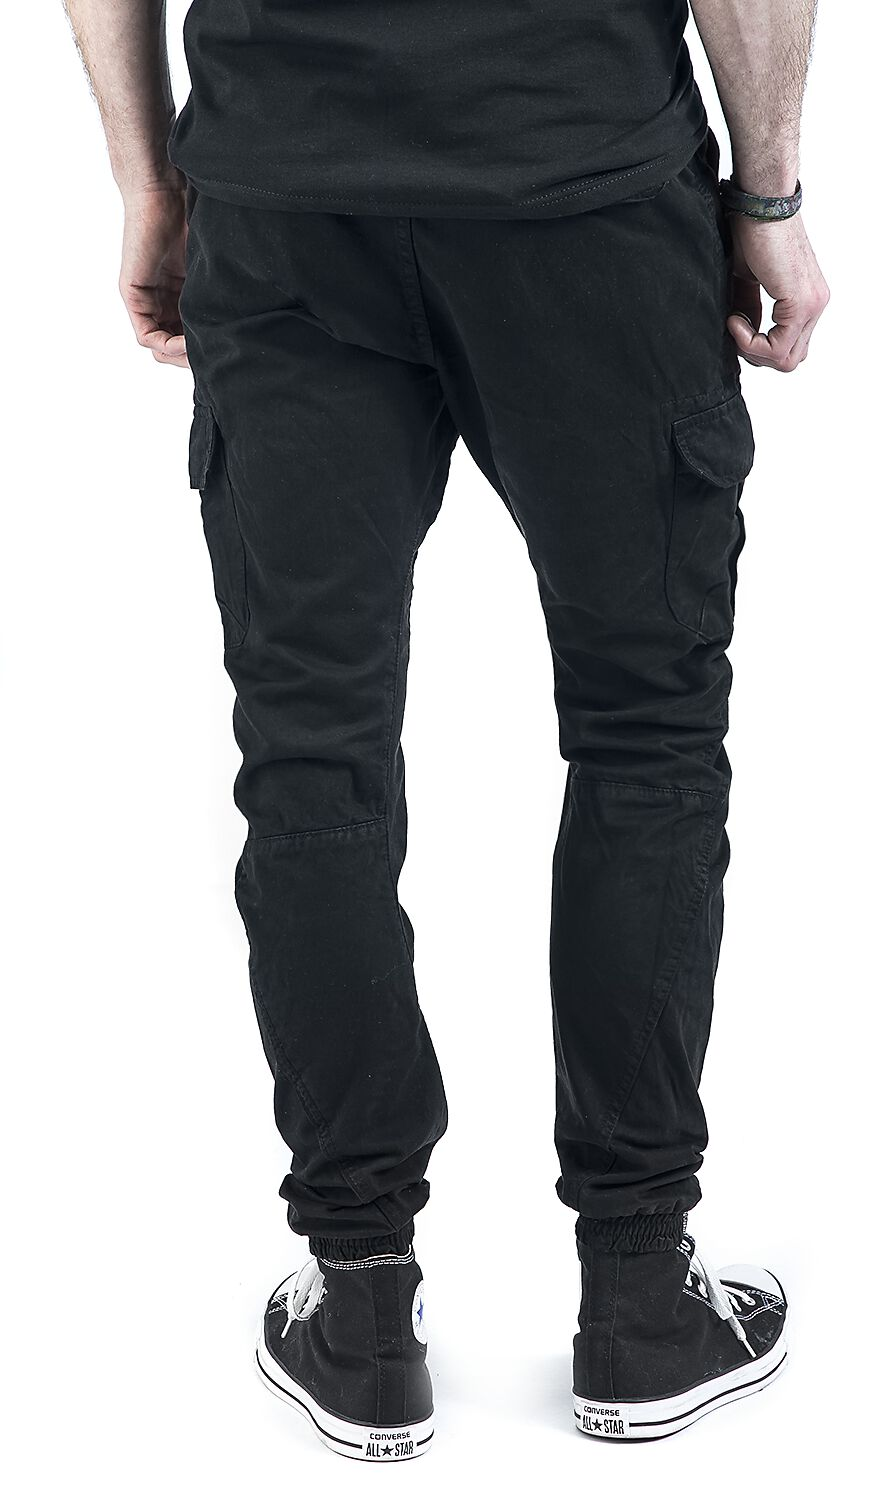 asteroid joggers buynow - photo #12